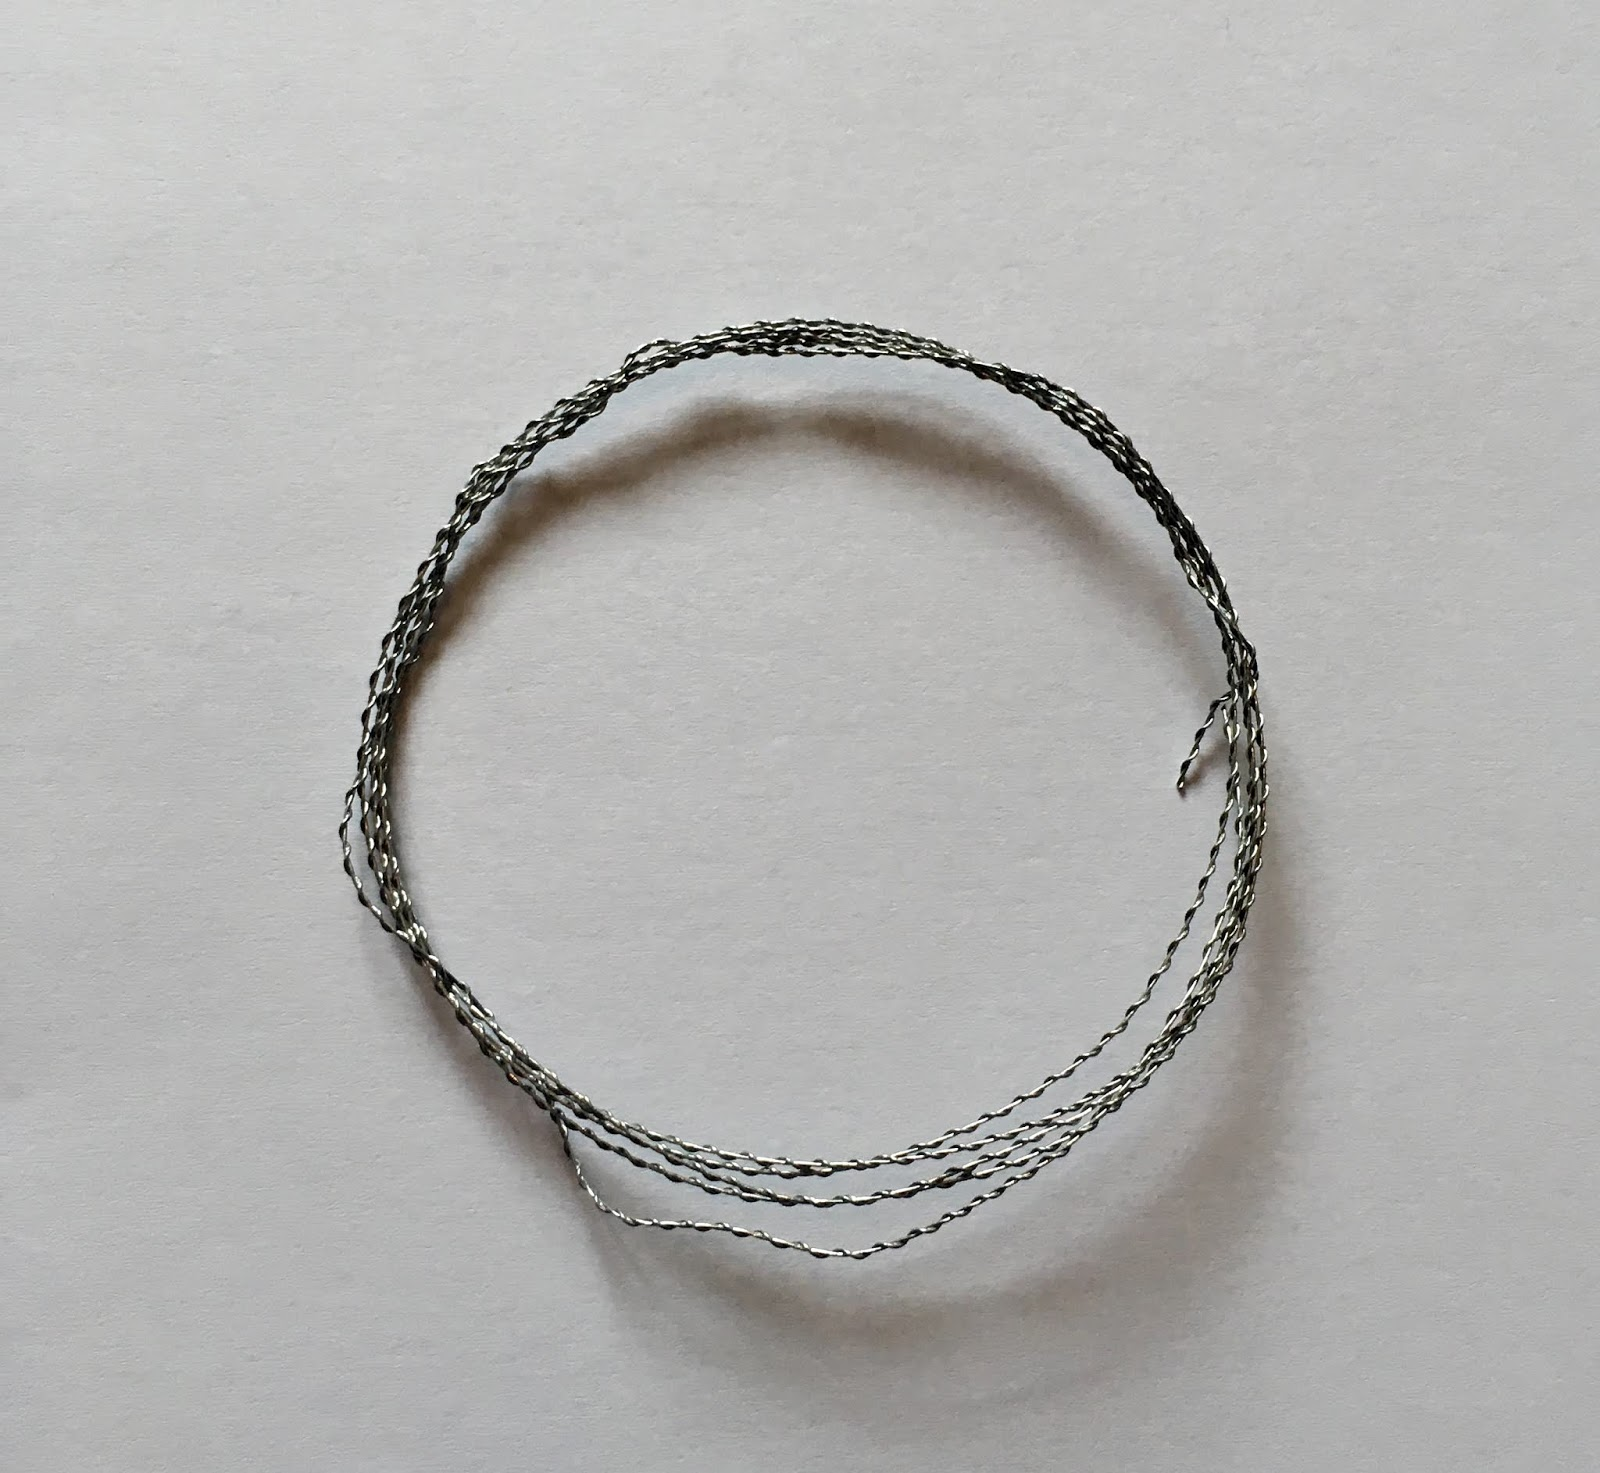 6mm barbed wire